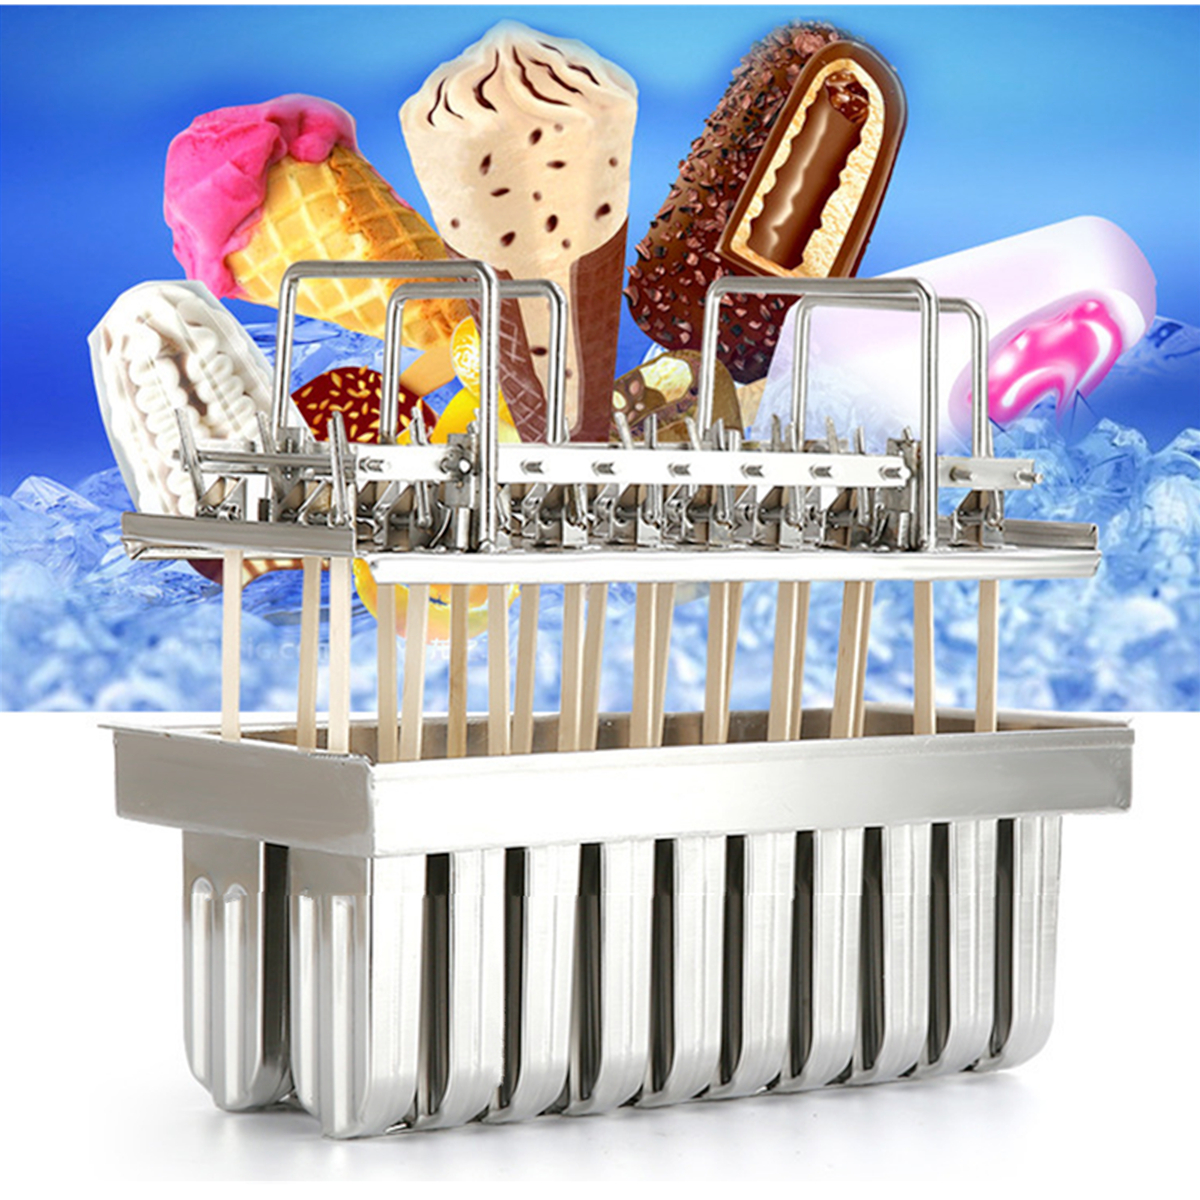 20Pcs Stainless Steel Molds Frozen Ice Cream Pop Popsicle Holder Maker +Sticks Mould